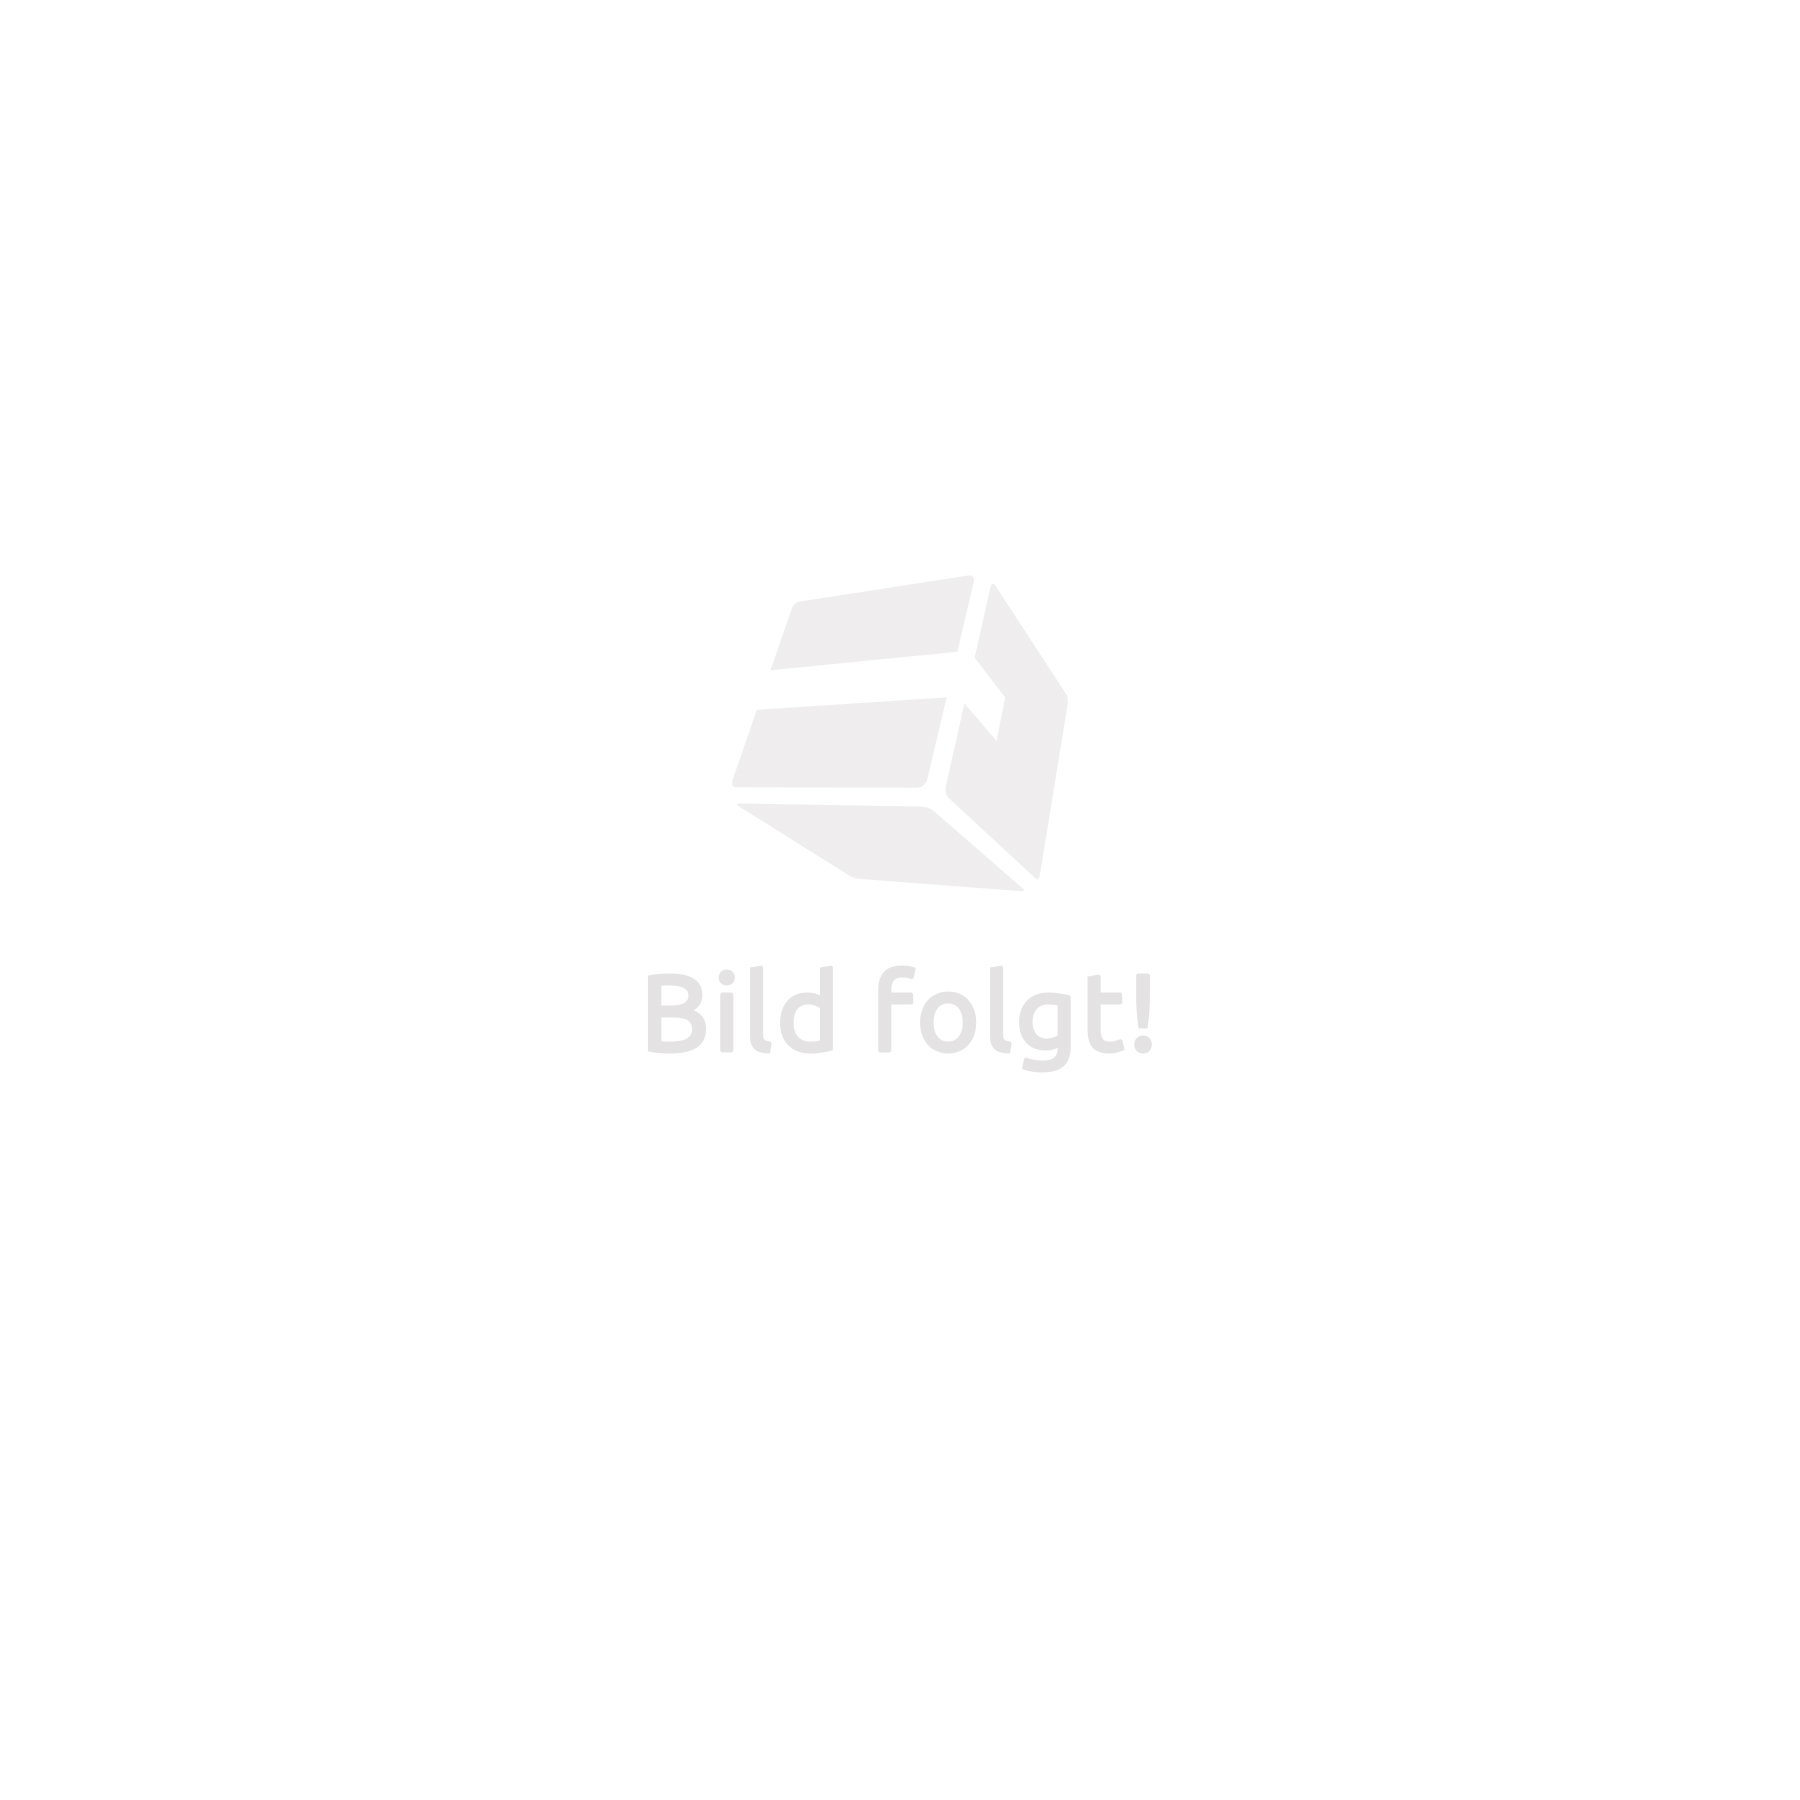 Mailbox with newspaper tube rounded stainless steel